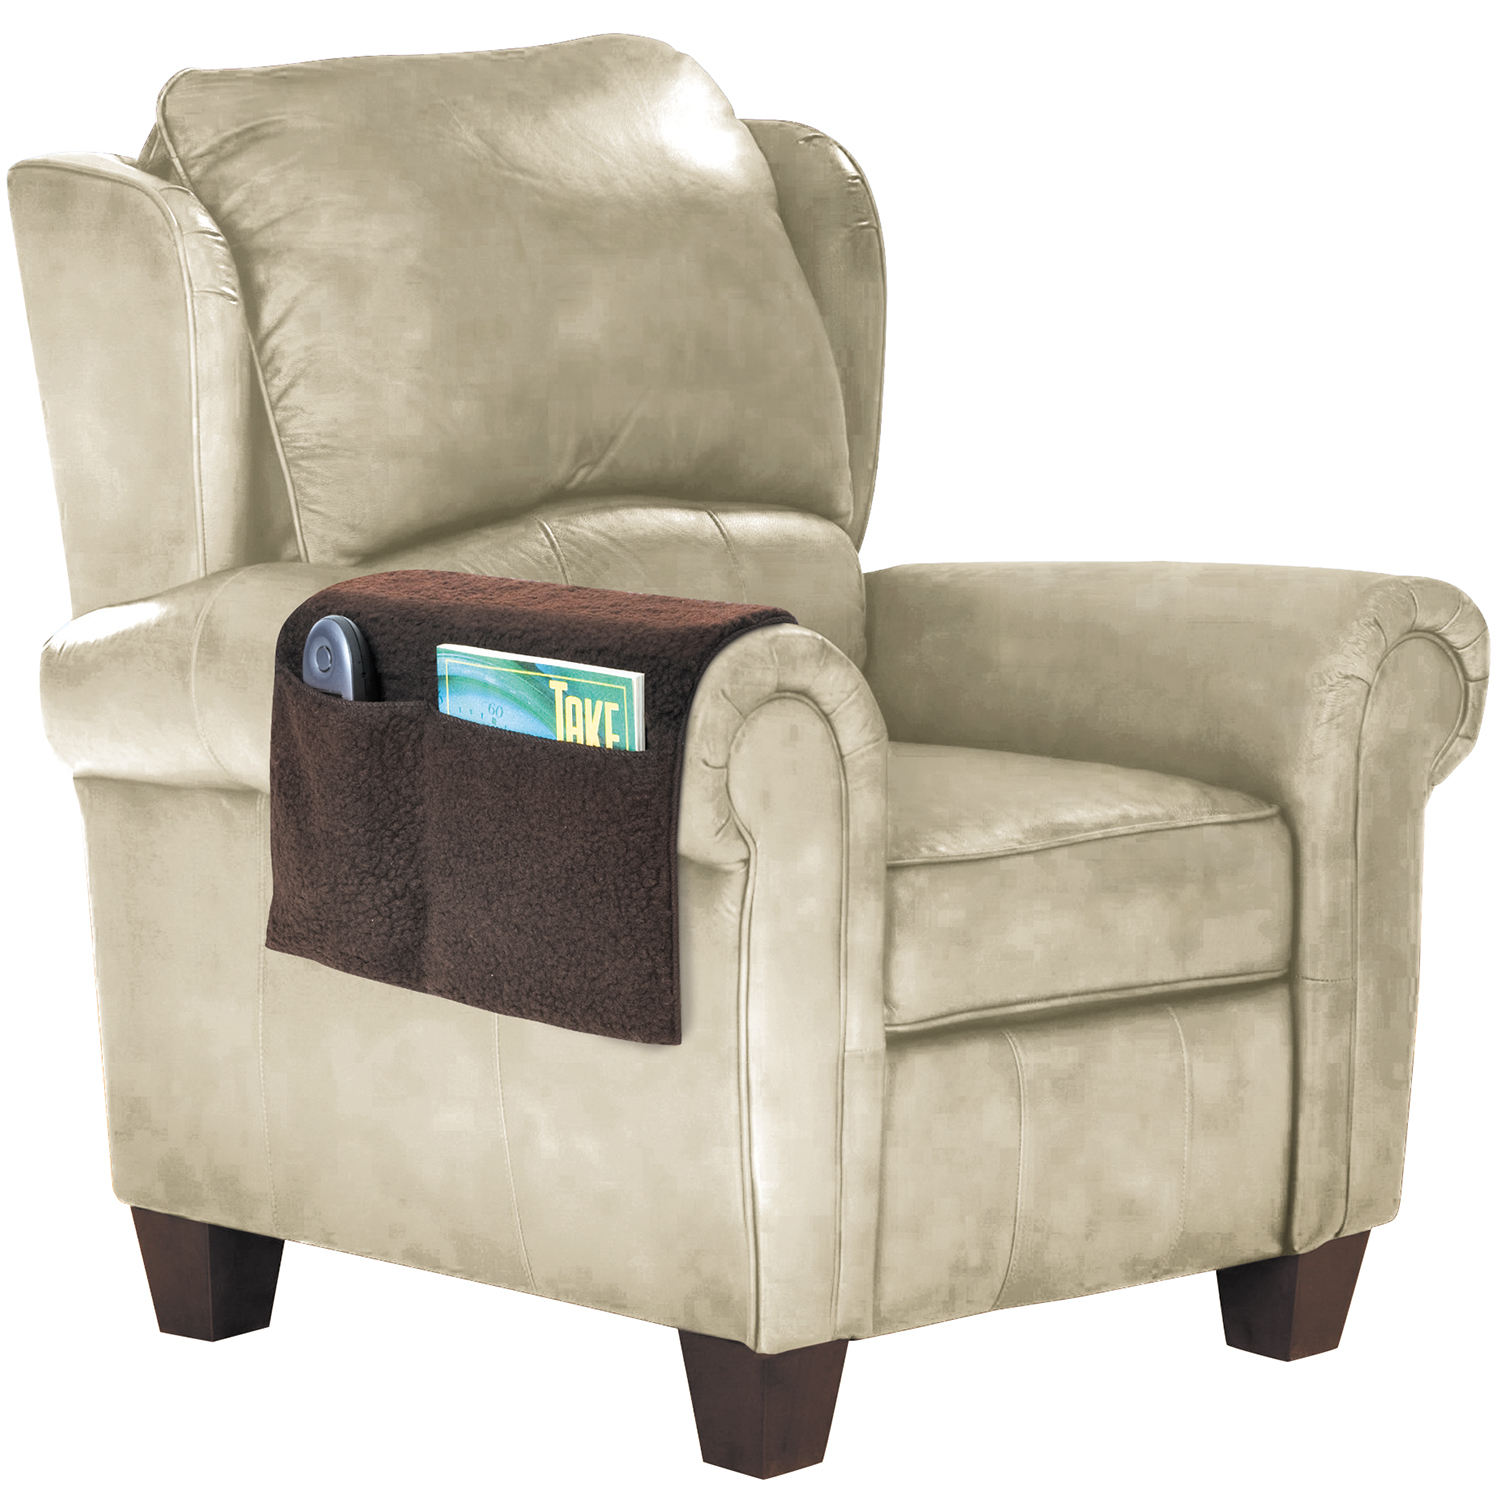 arm chair covers ebay chairs for dining room table protectors